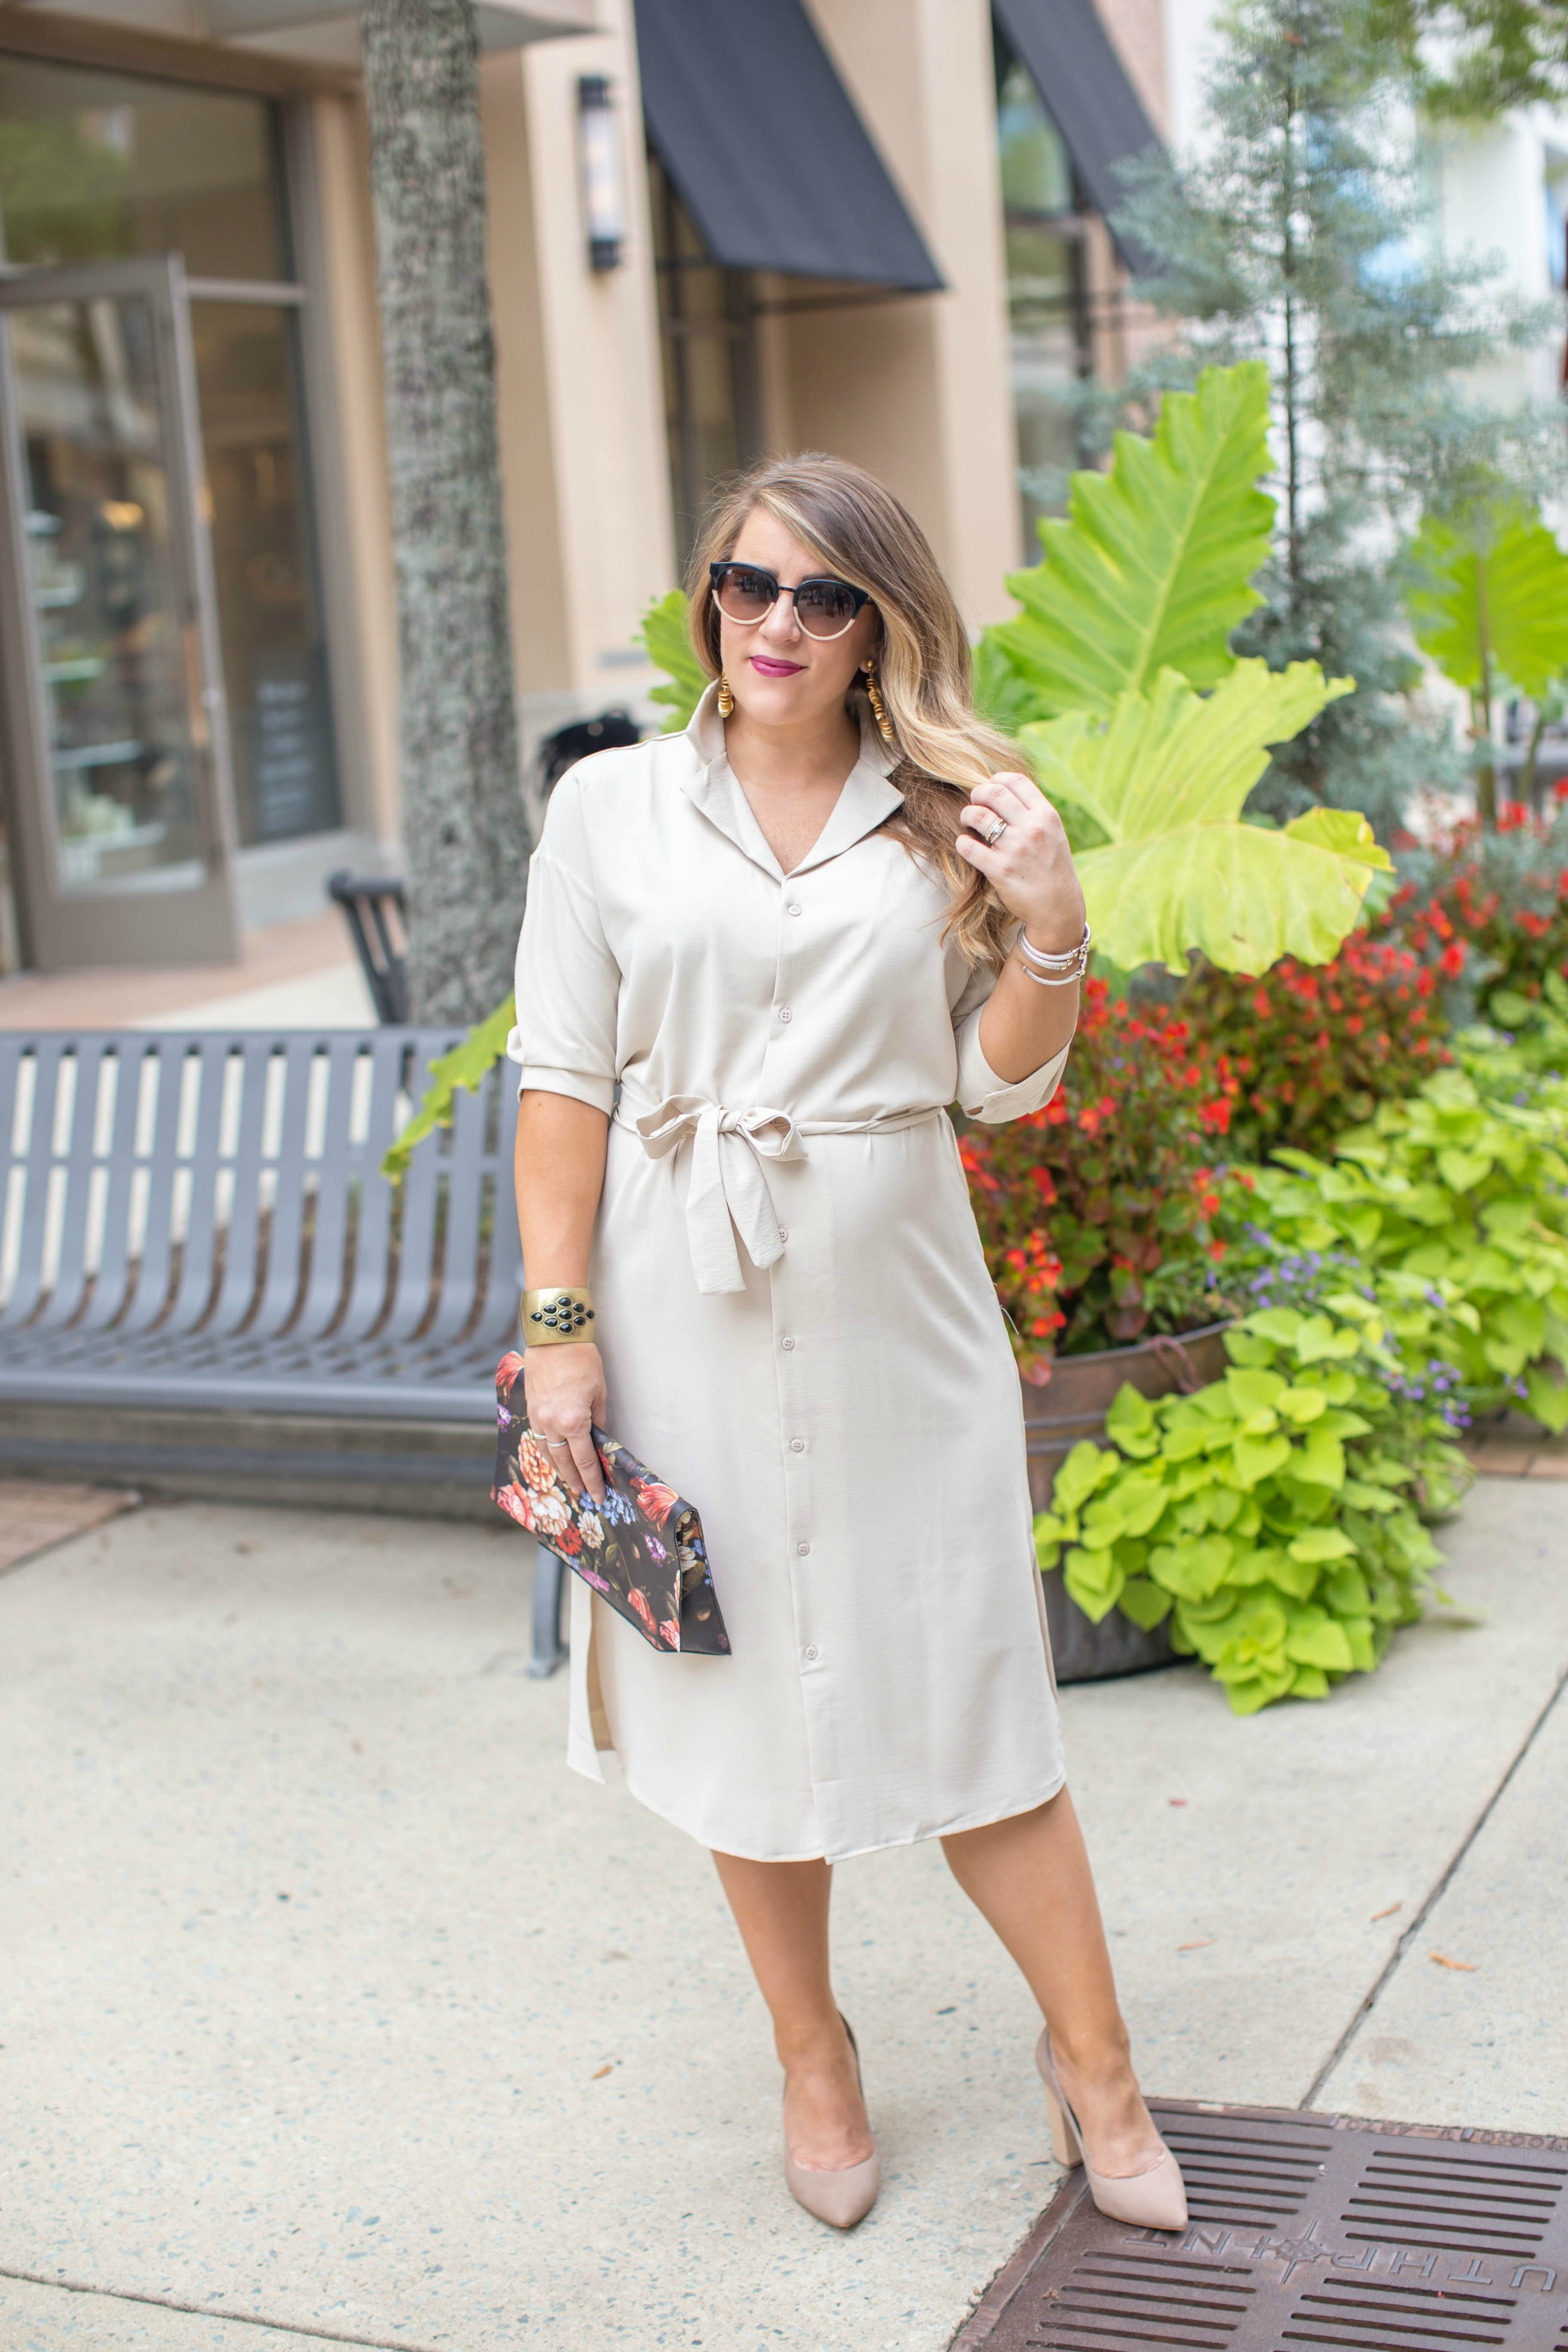 Classic Shirt-dress - Classic Shirt Dress by North Carolina fashion blogger Coffee Beans and Bobby Pins